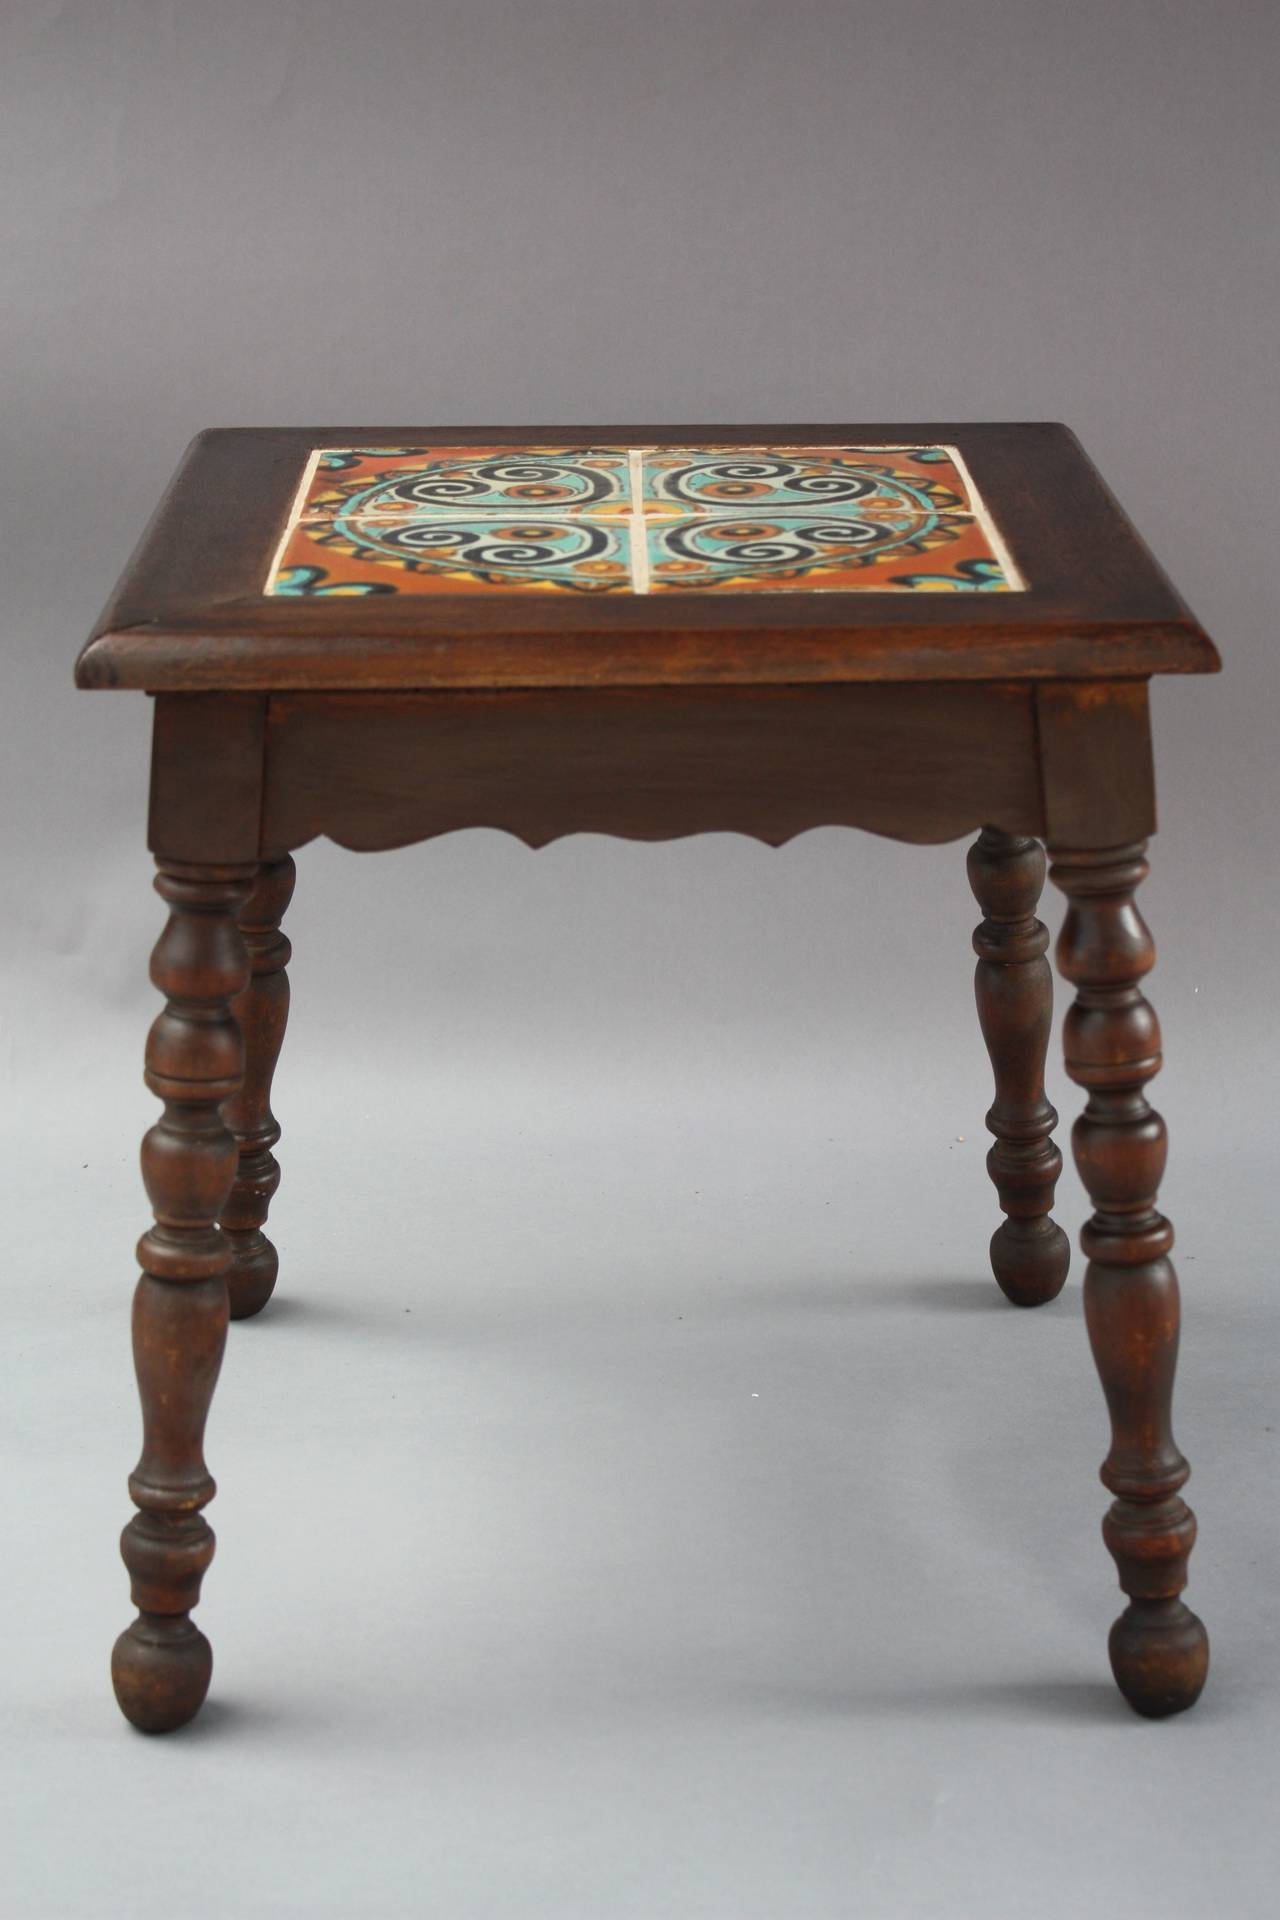 Antique california spanish revival table with tudor tiles for Table in spanish